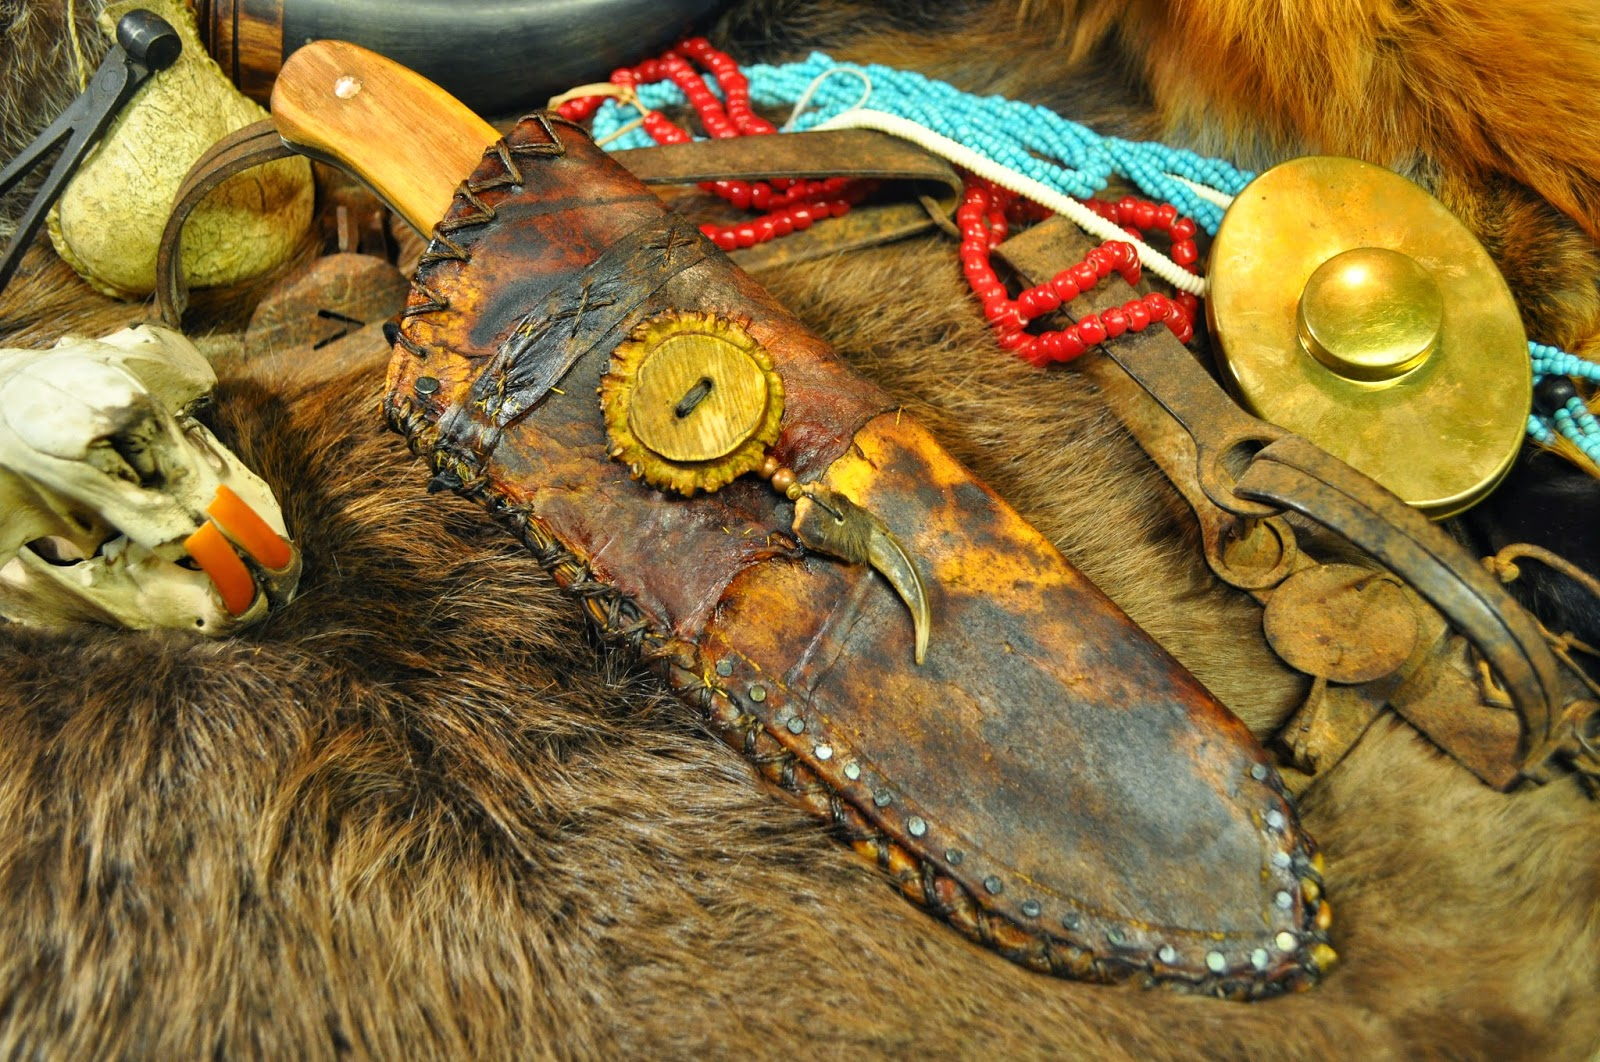 Skab Leatherworks: Mountain Man Camp Knife and Rawhide Sheath